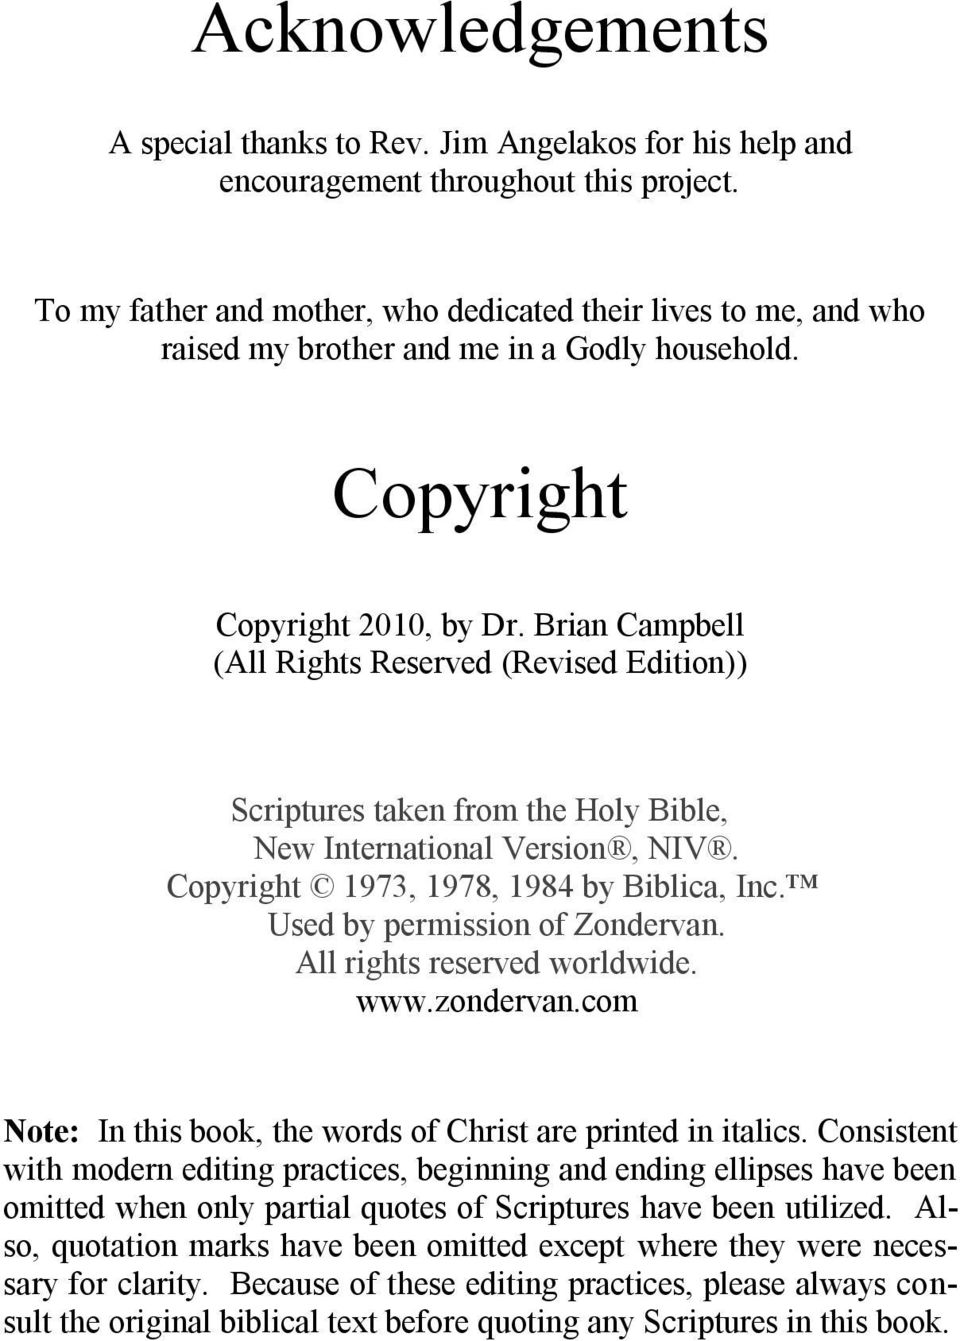 Brian Campbell (All Rights Reserved (Revised Edition)) Scriptures taken from the Holy Bible, New International Version, NIV. Copyright 1973, 1978, 1984 by Biblica, Inc.